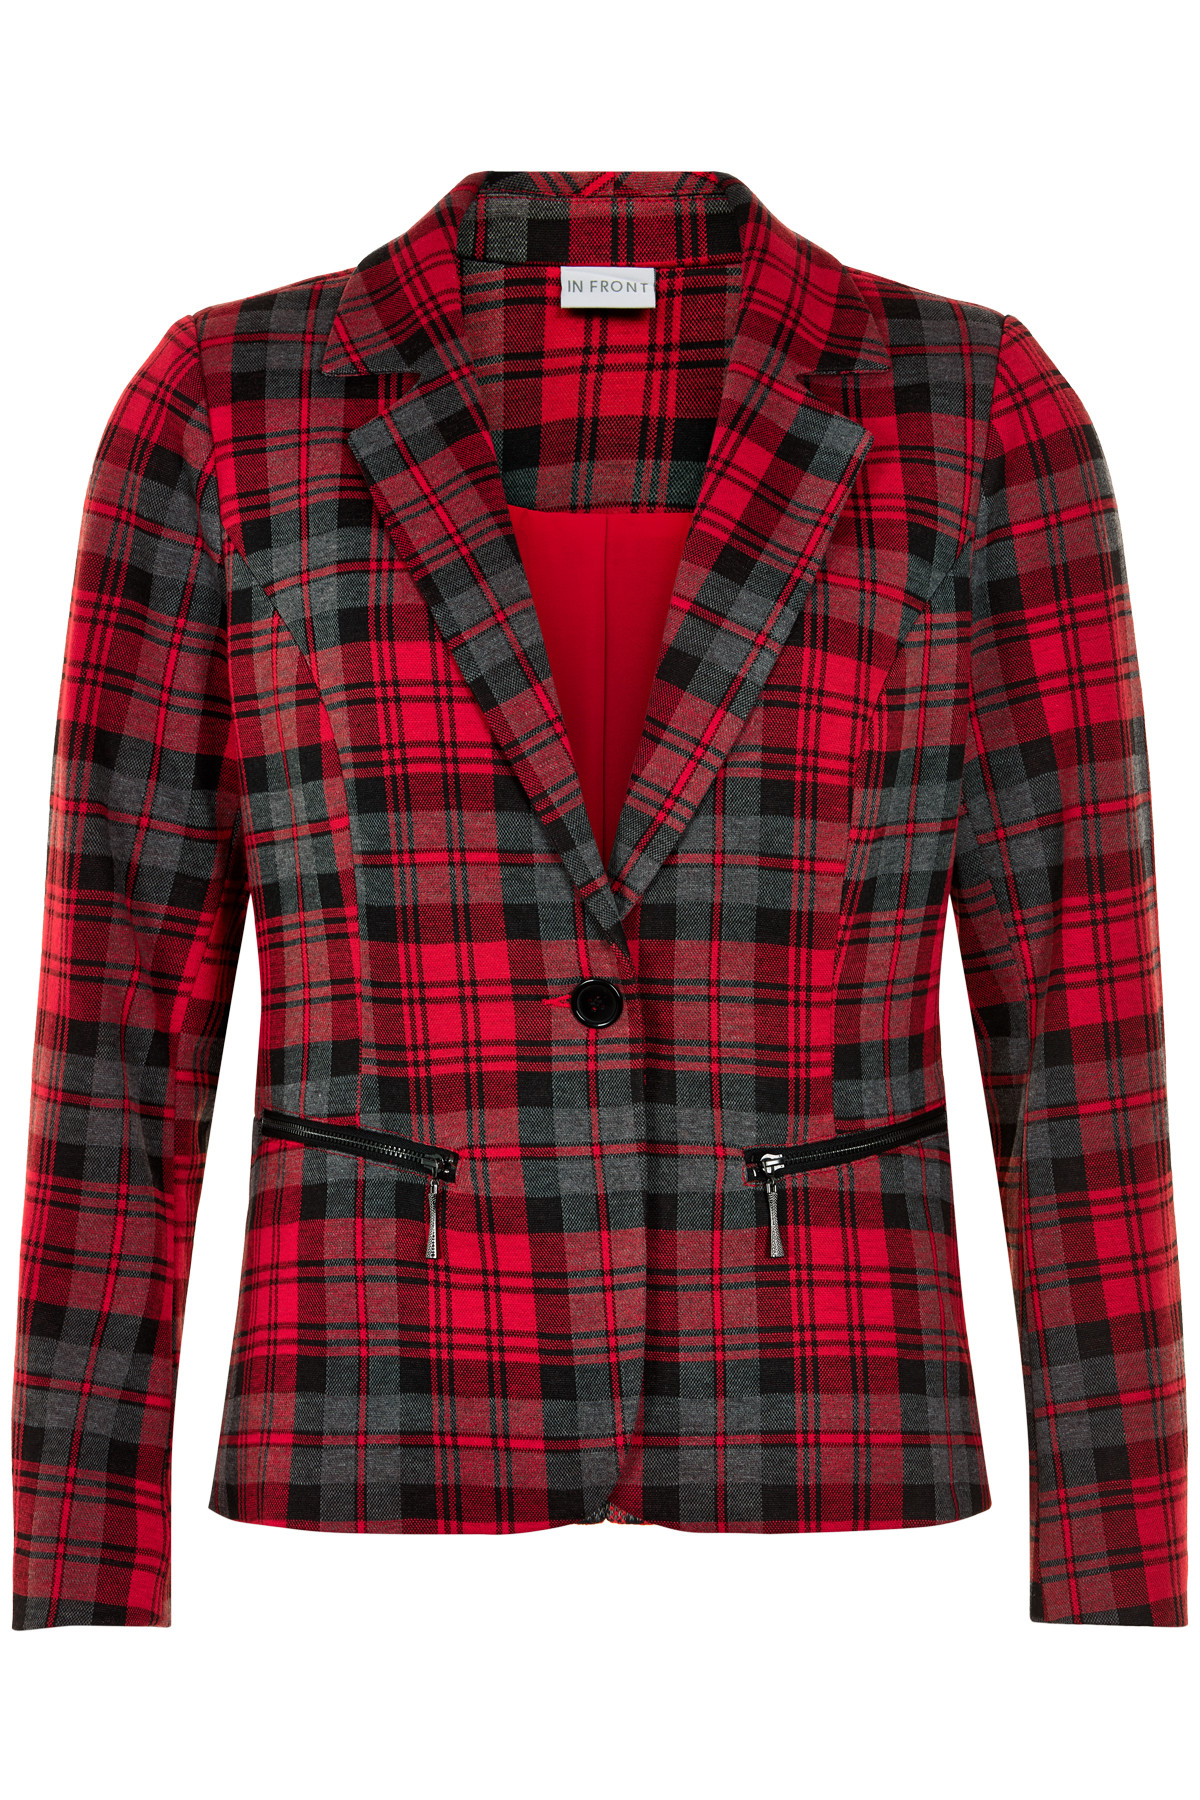 Image of   IN FRONT BERNICE CHECKED JAKKE 12848 (Red 409, XL)